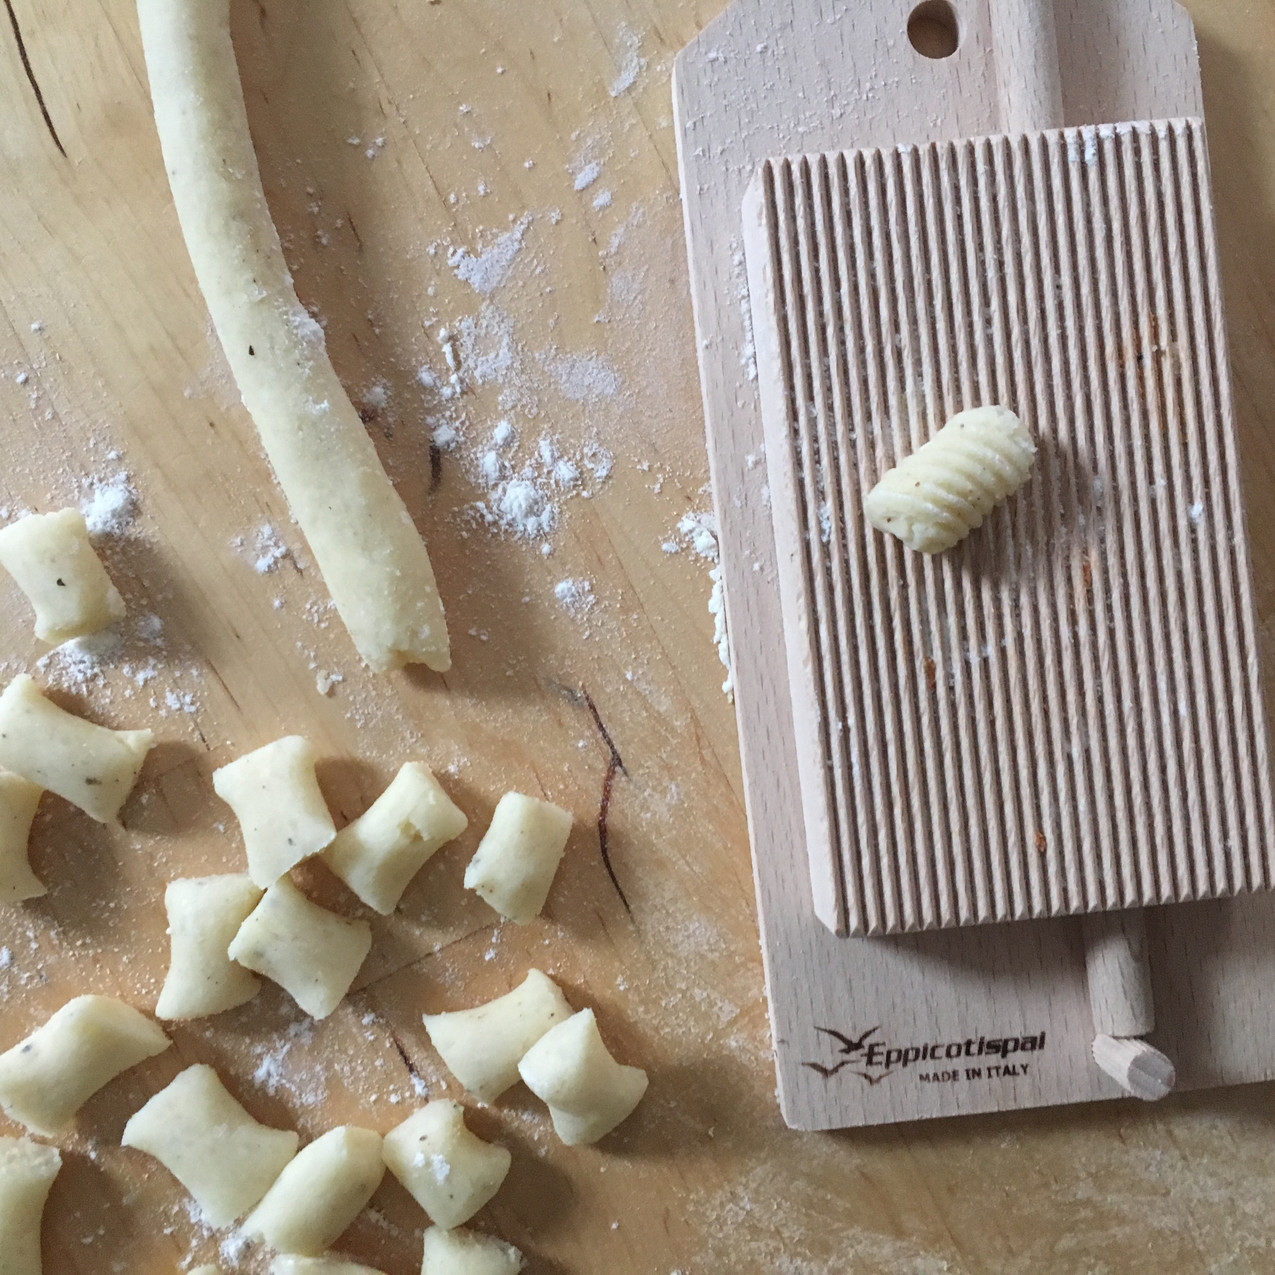 shaping gnocchi on a gnocchi board, 100 days of pasta